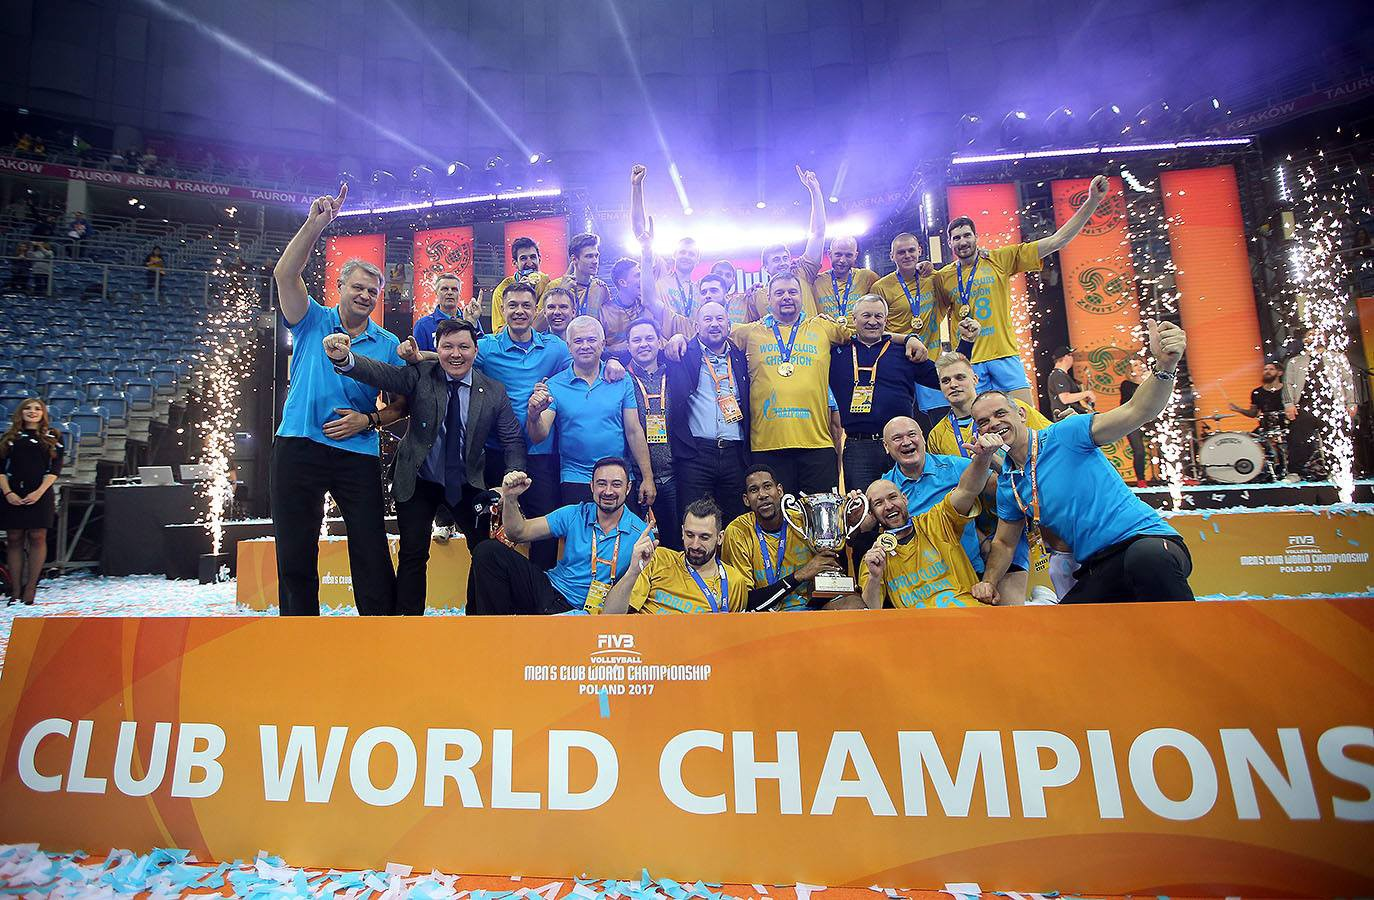 Zenit Kazan are on top of the world, winning the Club World Championship for the very first time!